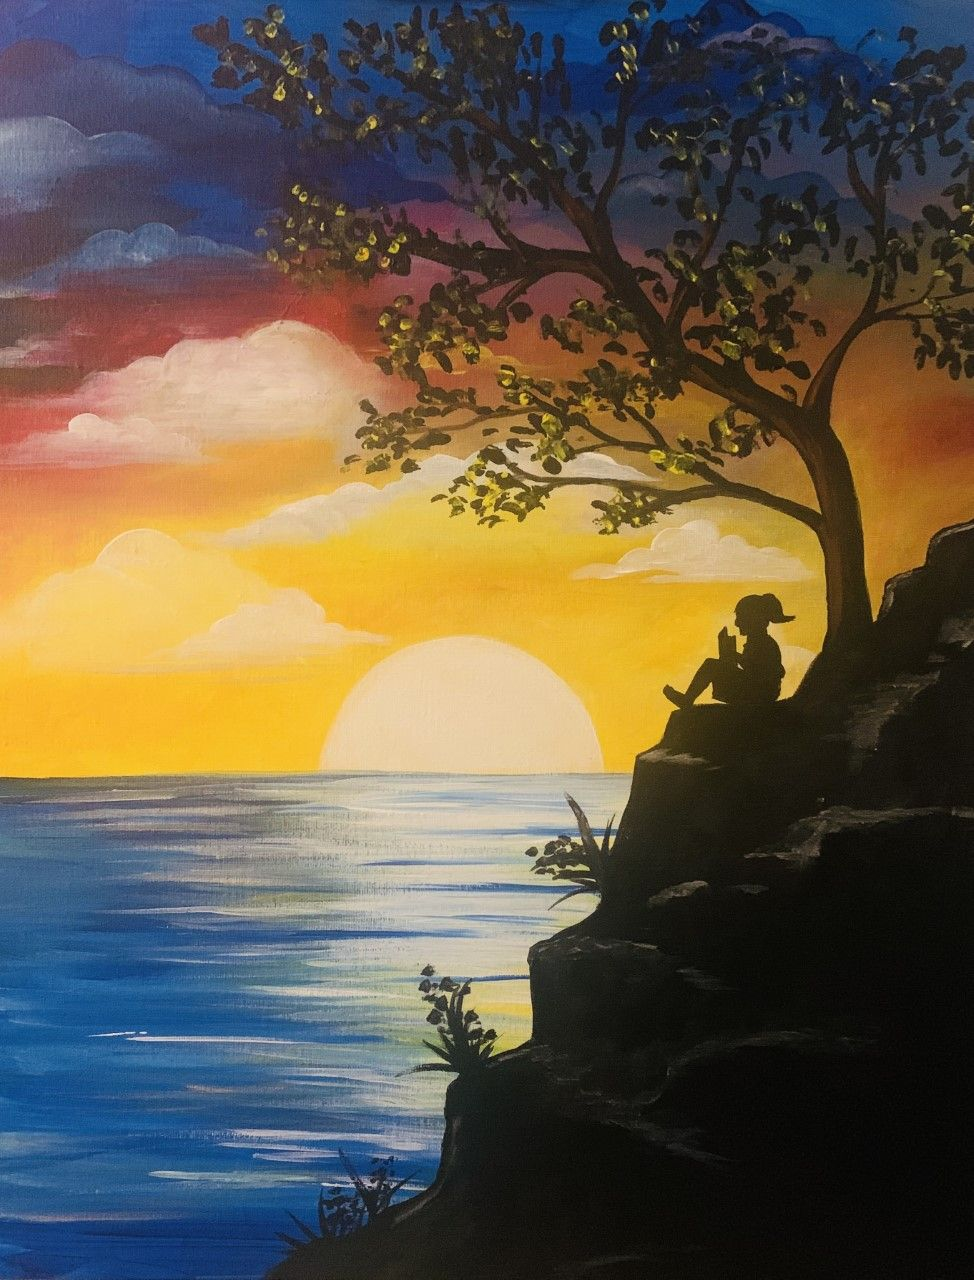 How Relaxing Is This View Beautiful Painting Of Nature Sunset Painting Ocean Sea Tree Therapeutic Sunset Painting Abstract Landscape Painting Painting